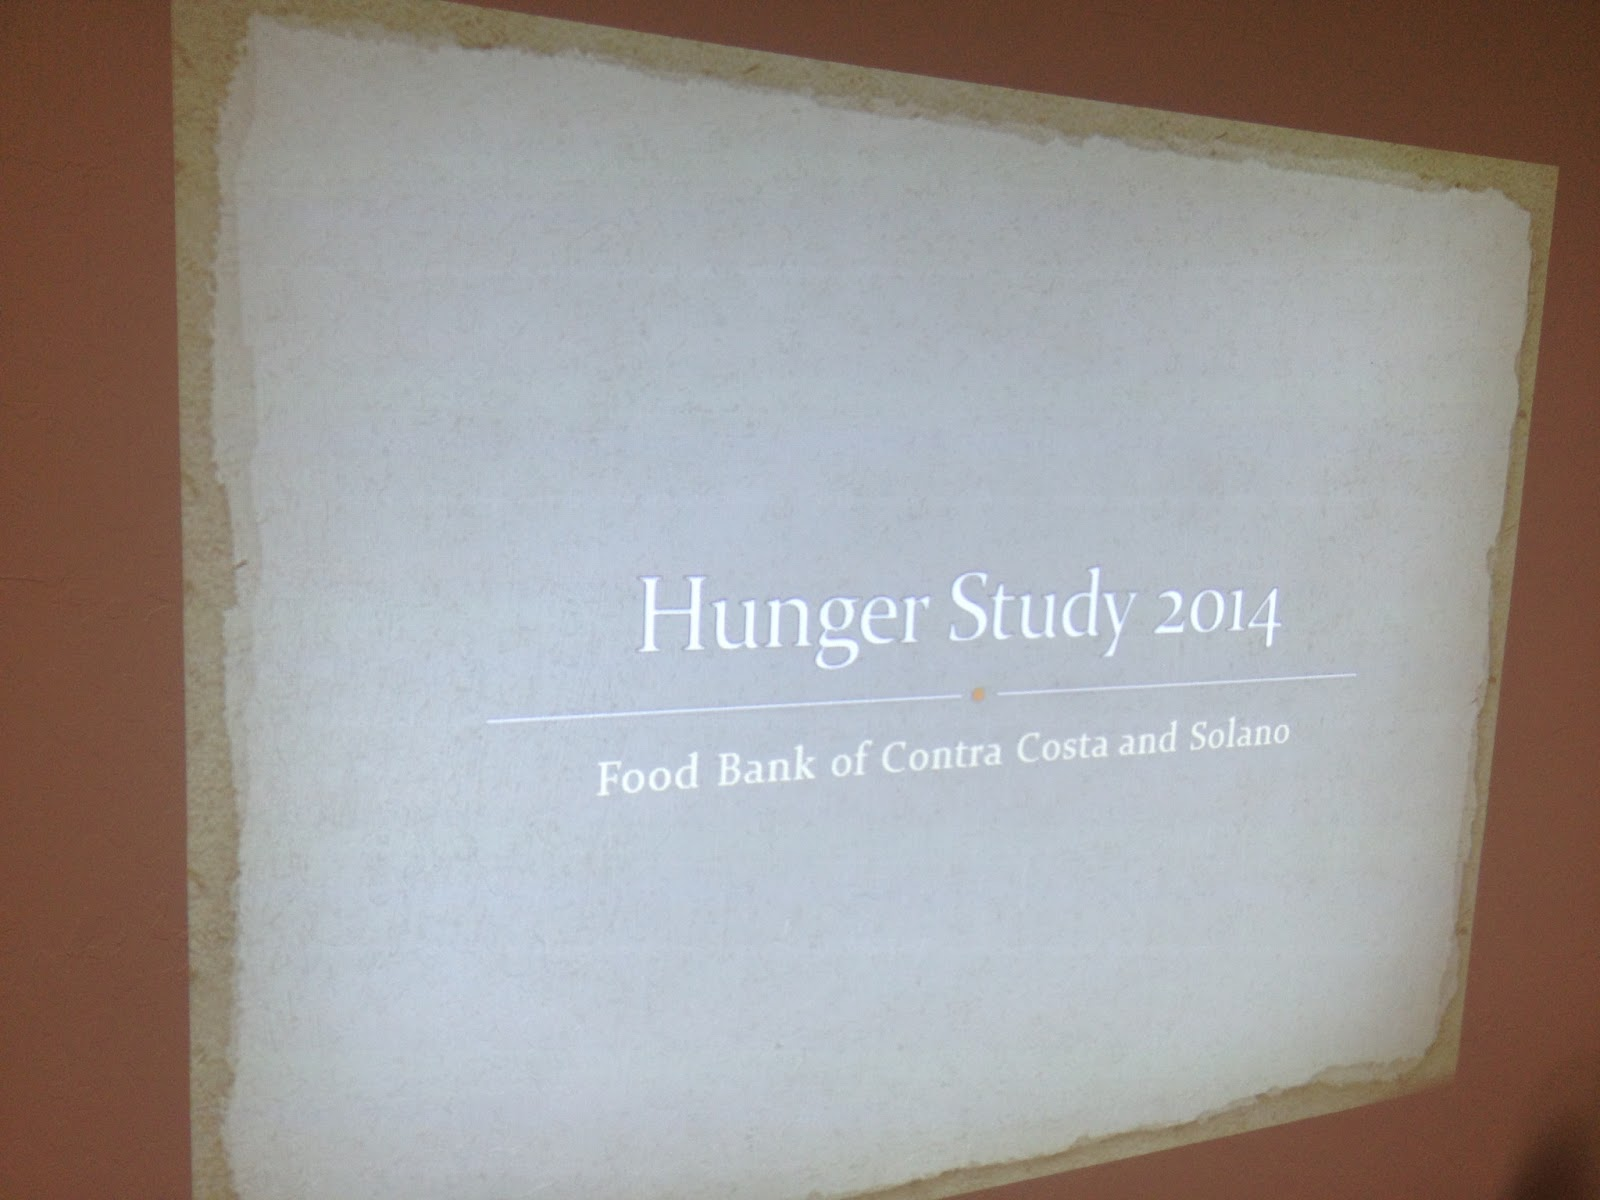 a study of hunger The hunger in america study series is the nation's largest and most comprehensive insight into charitable food distribution in the united states hunger in america is a series of quadrennial studies that provide comprehensive demographic profiles of people seeking food assistance through the charitable sector and an in-depth analysis of the.